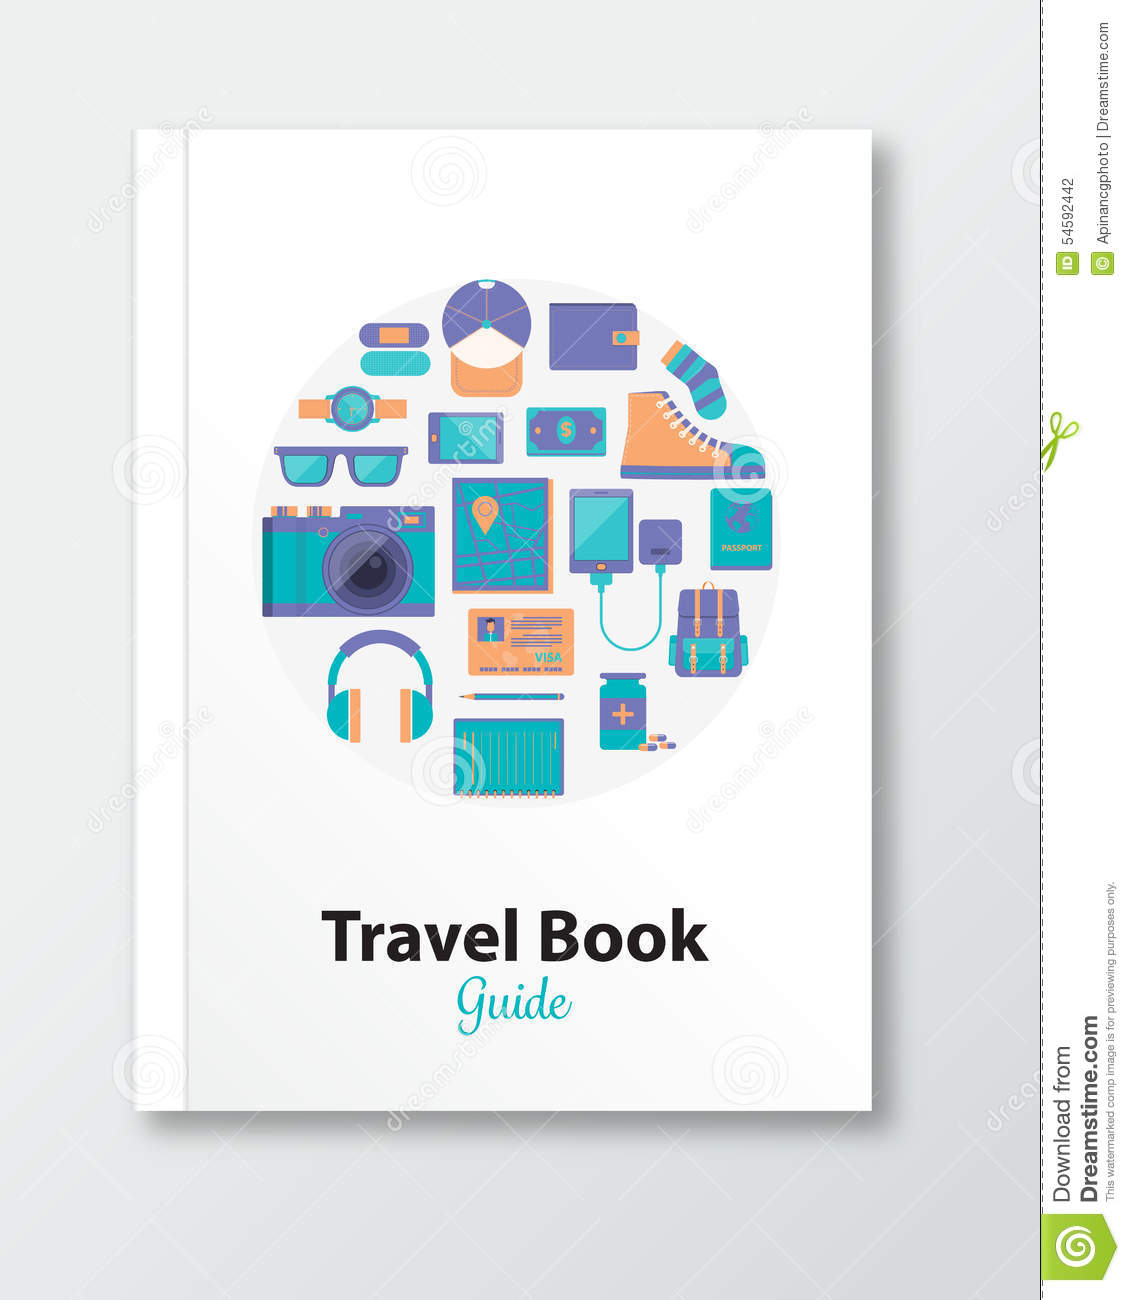 Book Cover Typography Map ~ Travel book cover design template stock illustration